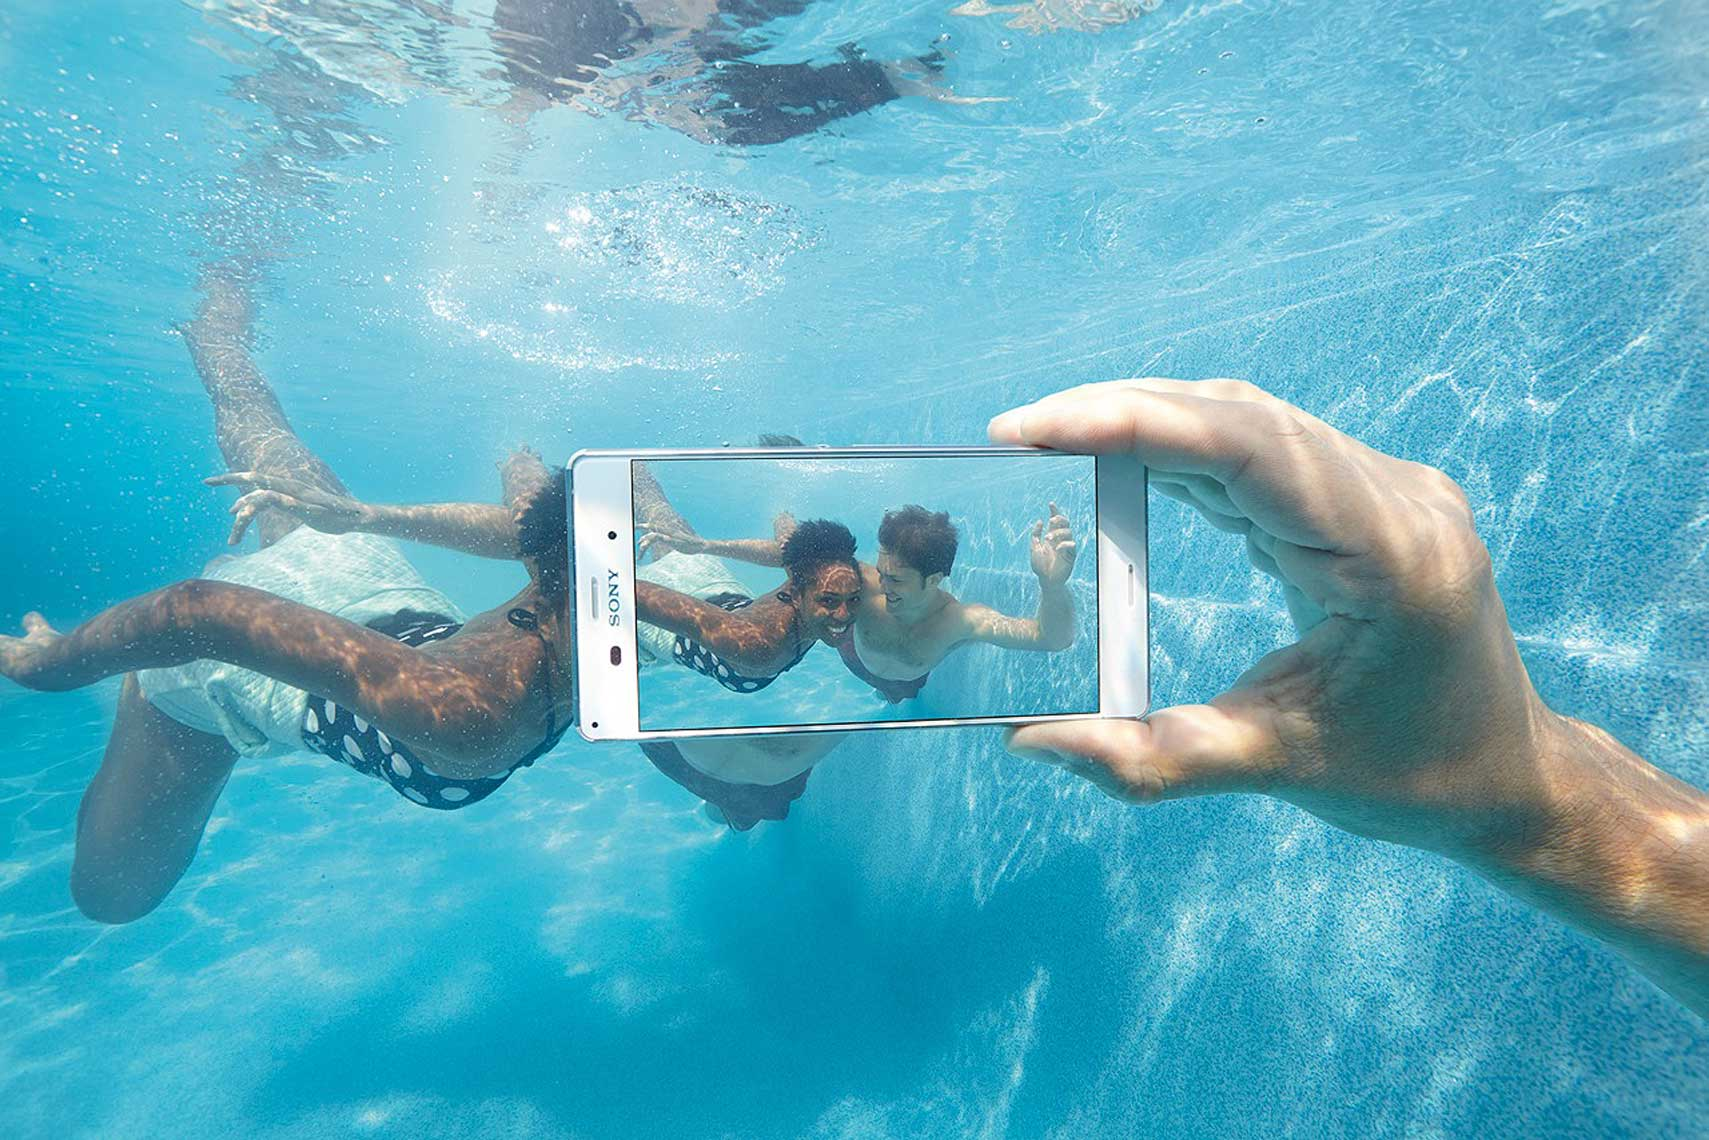 issie-gibbons-fashion-stylist-underwater-campaign-sony-phone